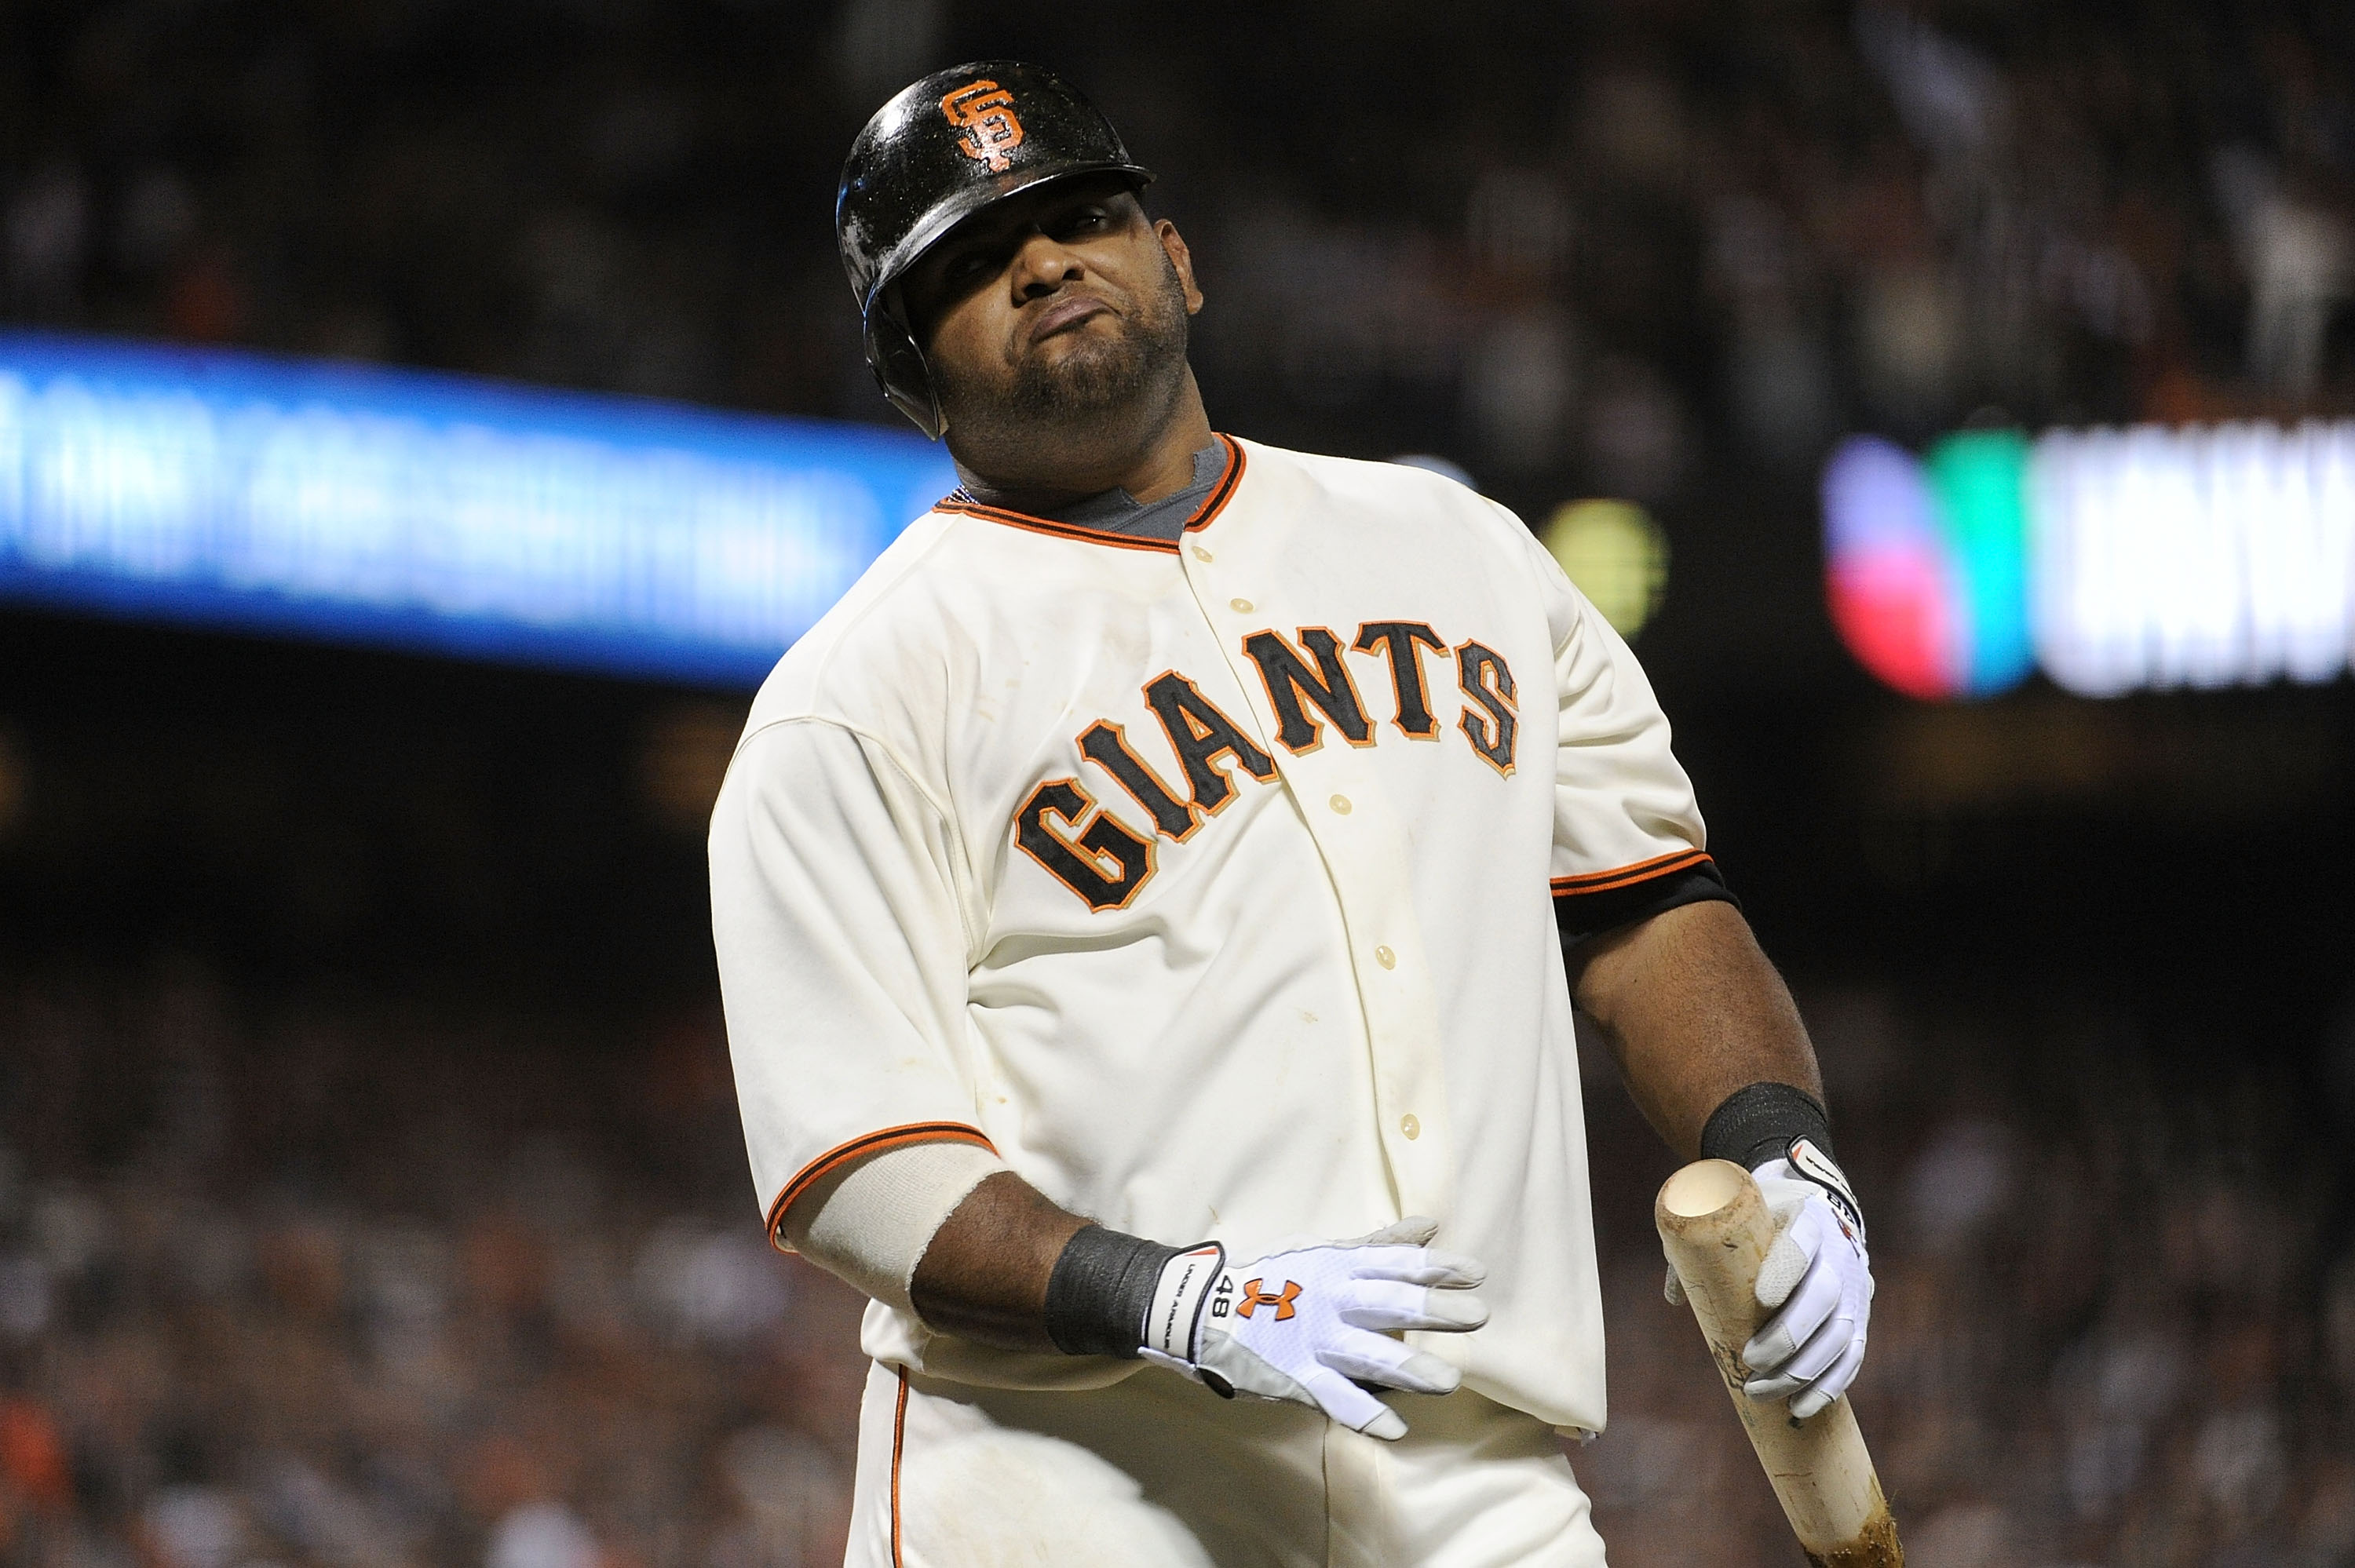 SAN FRANCISCO - OCTOBER 20:  Pablo Sandoval #48 of the San Francisco Giants reacts during an at-bat against the Philadelphia Phillies in Game Four of the NLCS during the 2010 MLB Playoffs at AT&T Park on October 20, 2010 in San Francisco, California.  (Ph